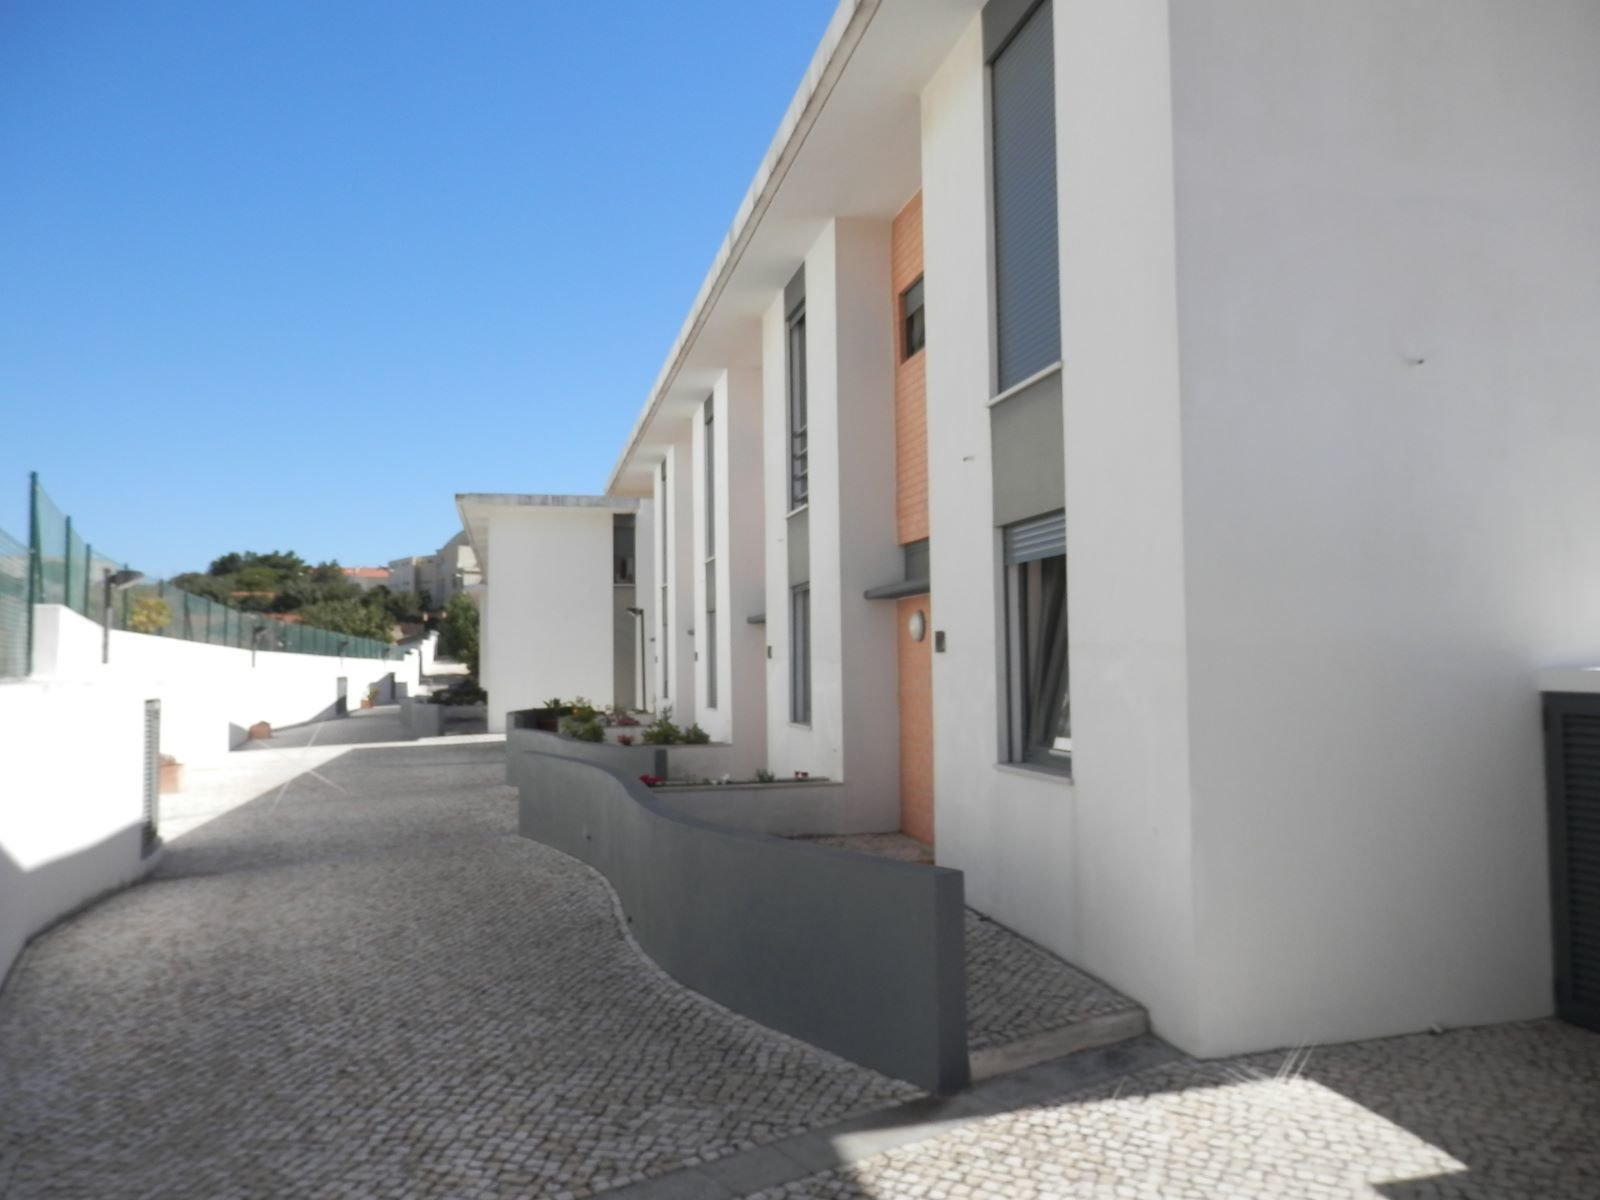 3 Bedroom Villa Cascais, Lisbon Ref: AVI307